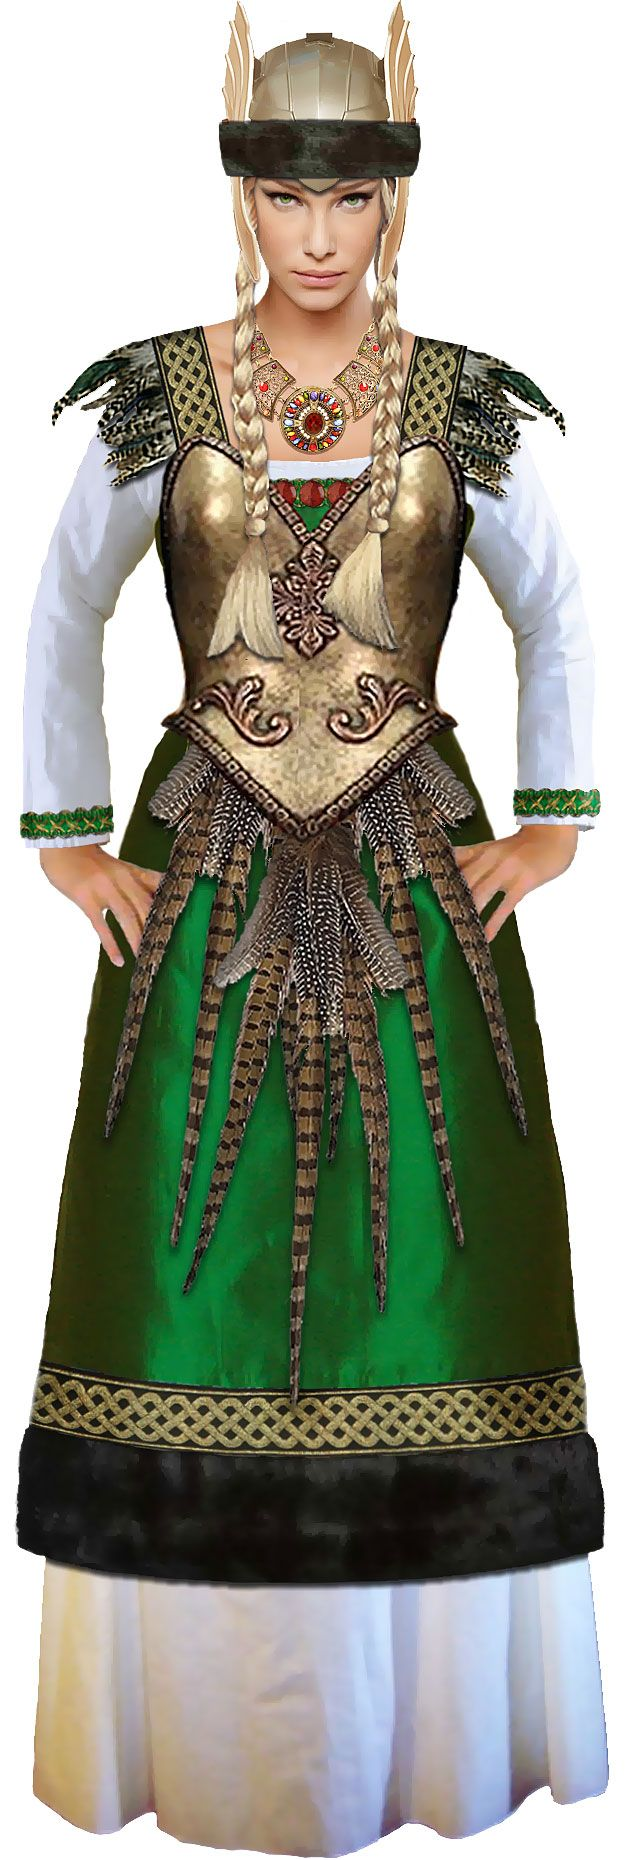 For reference, here's the Freyja costume design from our site. Abby did a great job and really made it her own.